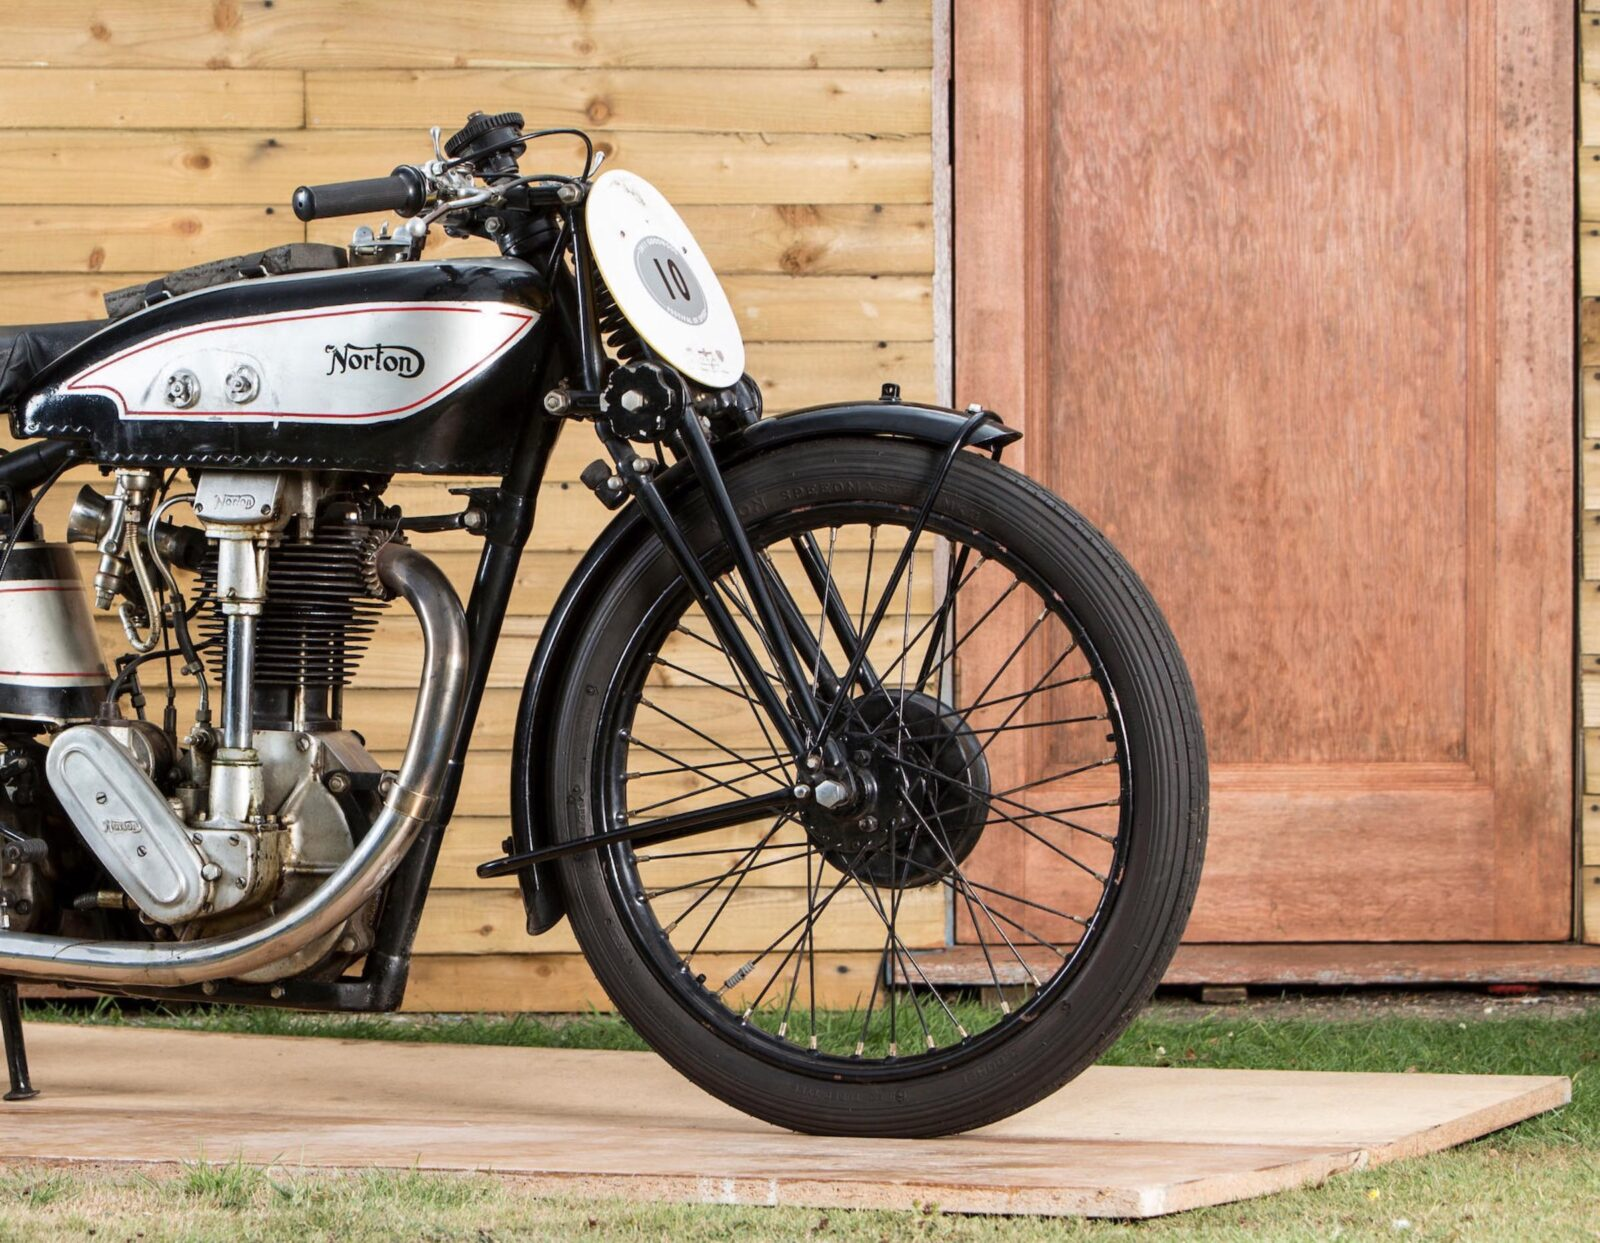 The Norton Model 30 International: The Bike That Dominated The Isle of Man TT